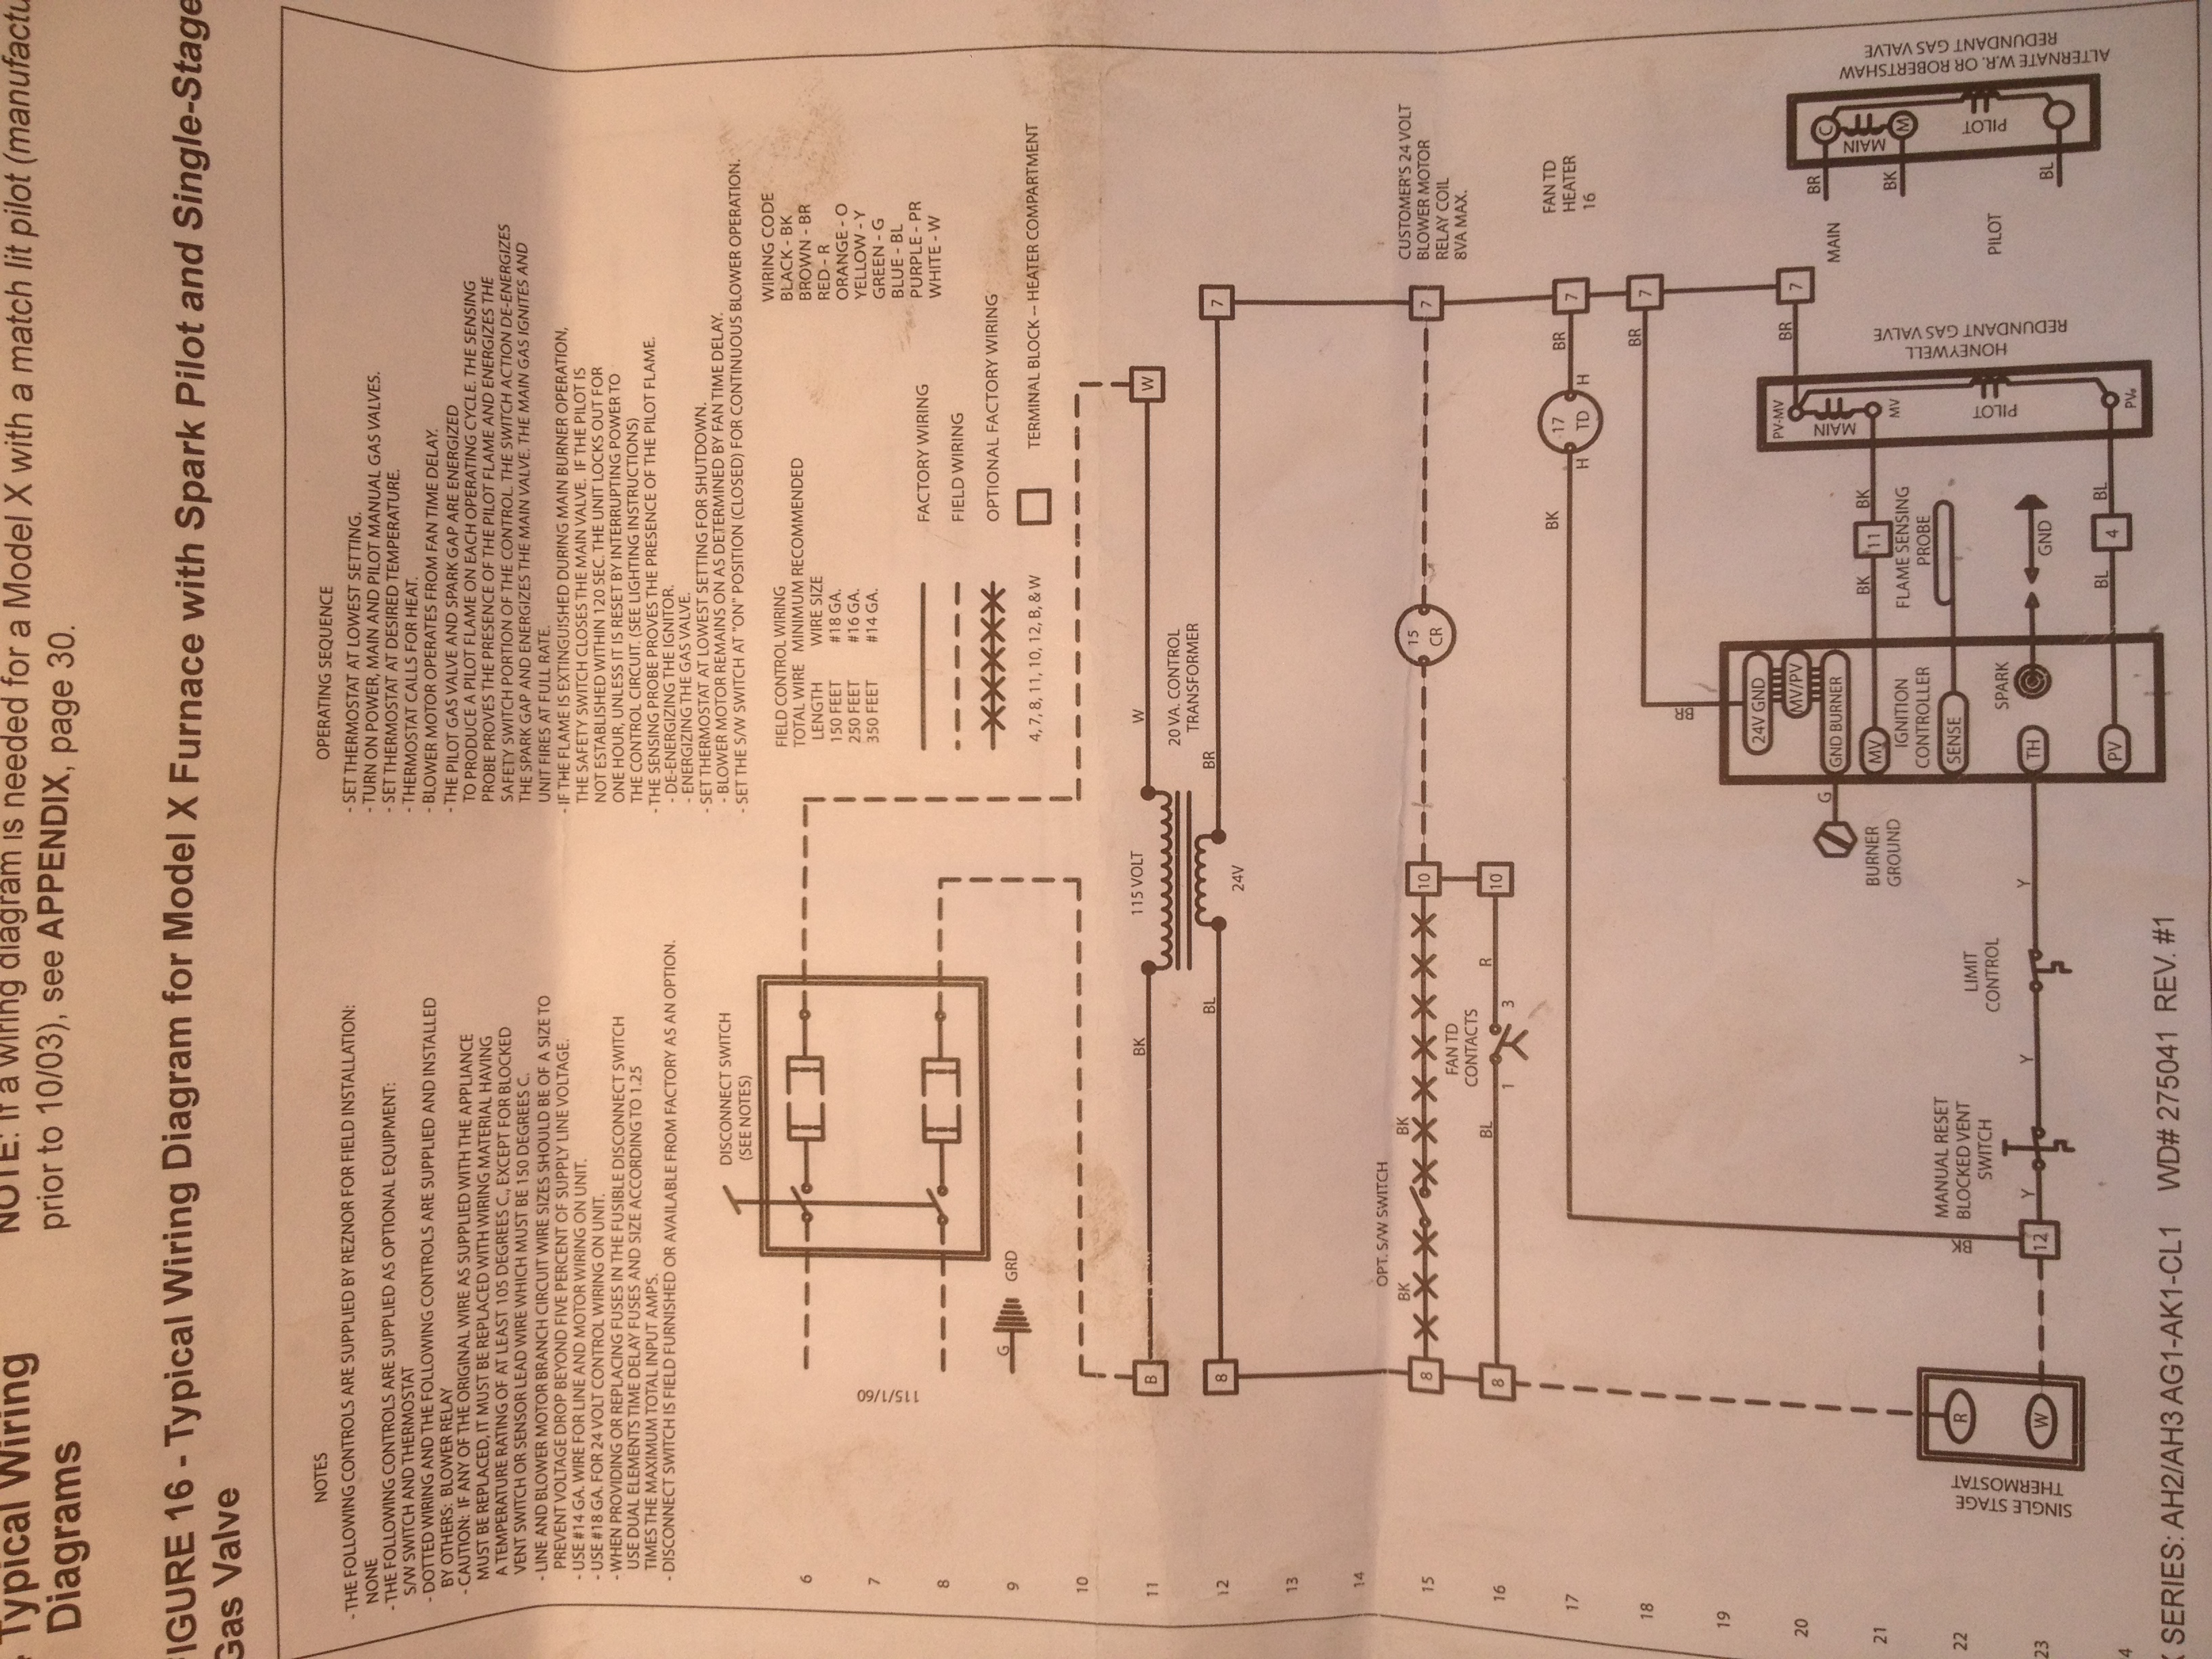 Singer Electric Furnace Wiring Diagram Reznor Blower 1977 Starting Know About Heater Wont Re Fire